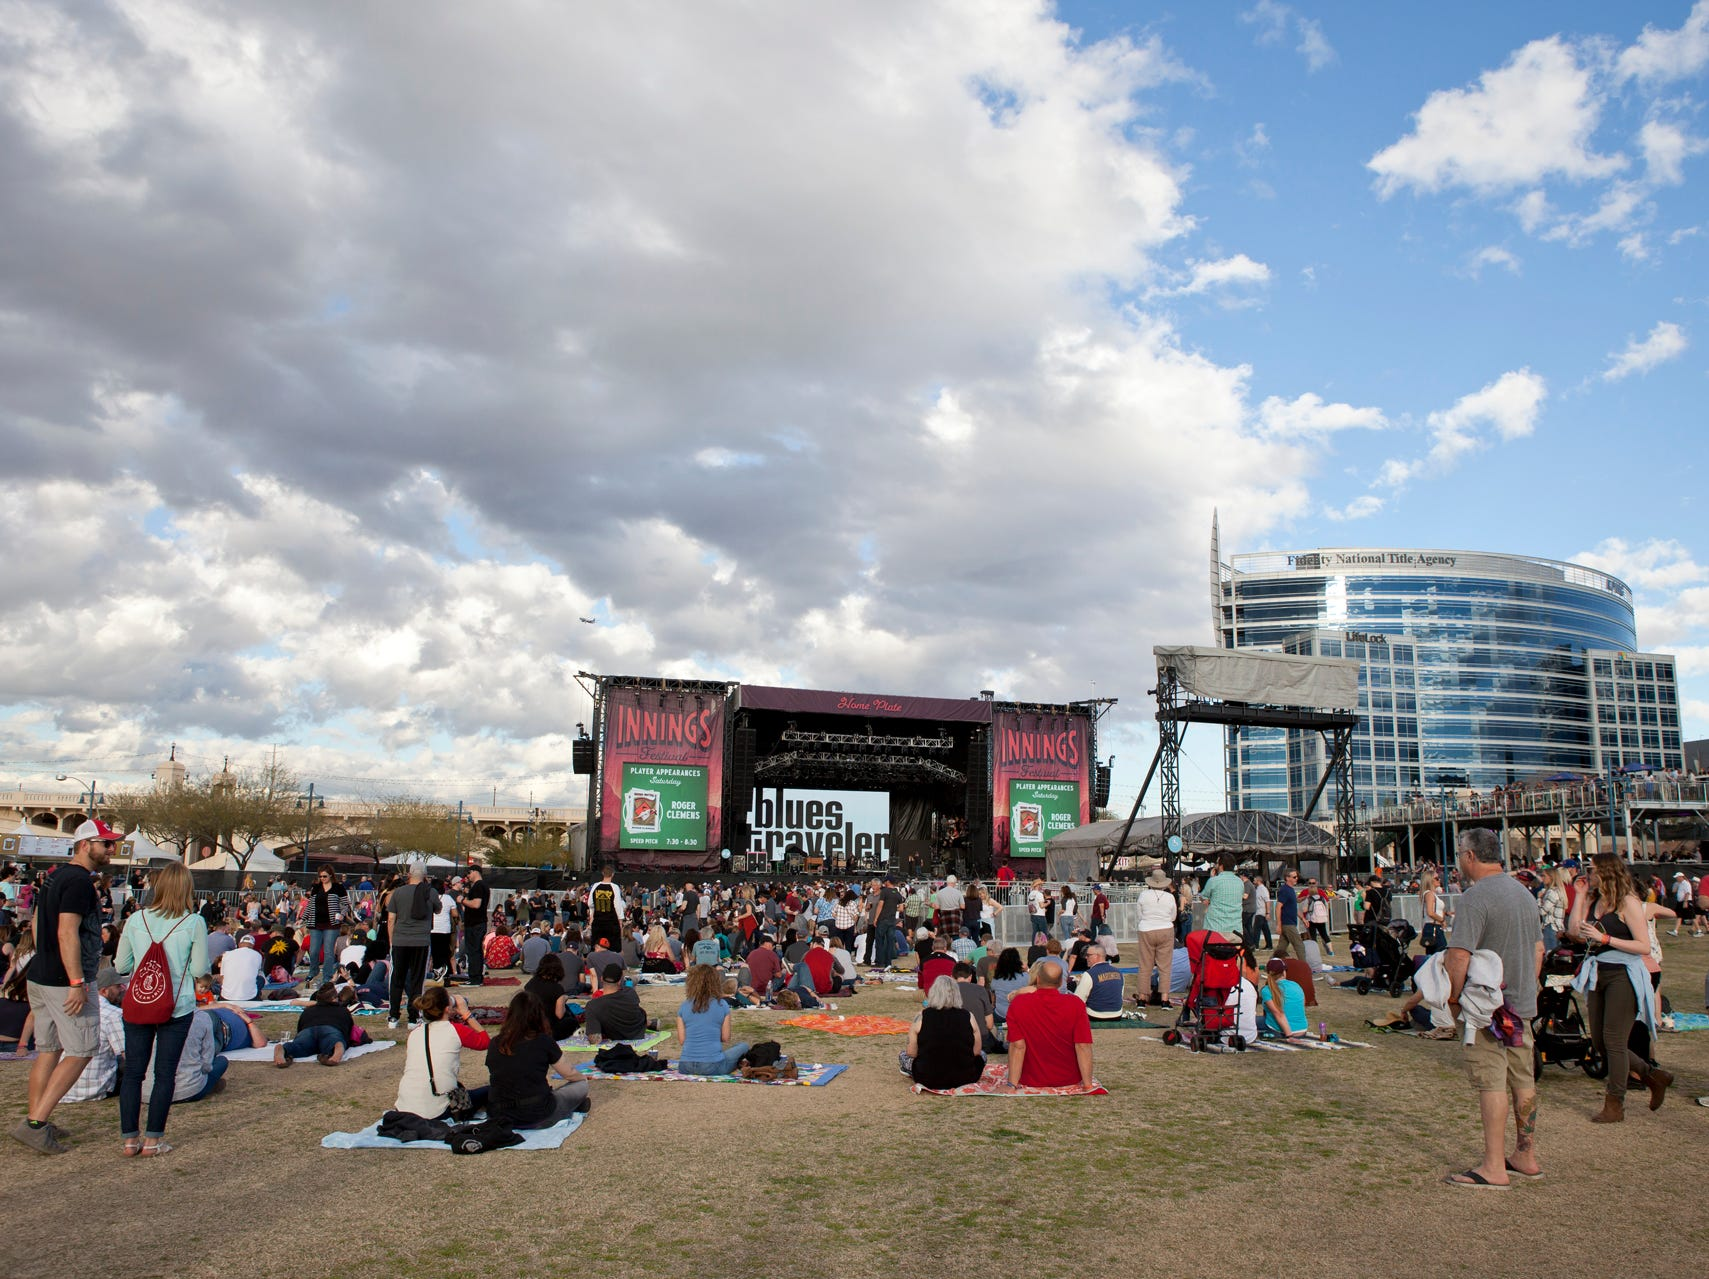 The crowd begins to gather for Blues Traveler at the Innings Festival on March 2, 2019, at Tempe Beach Park in Tempe.